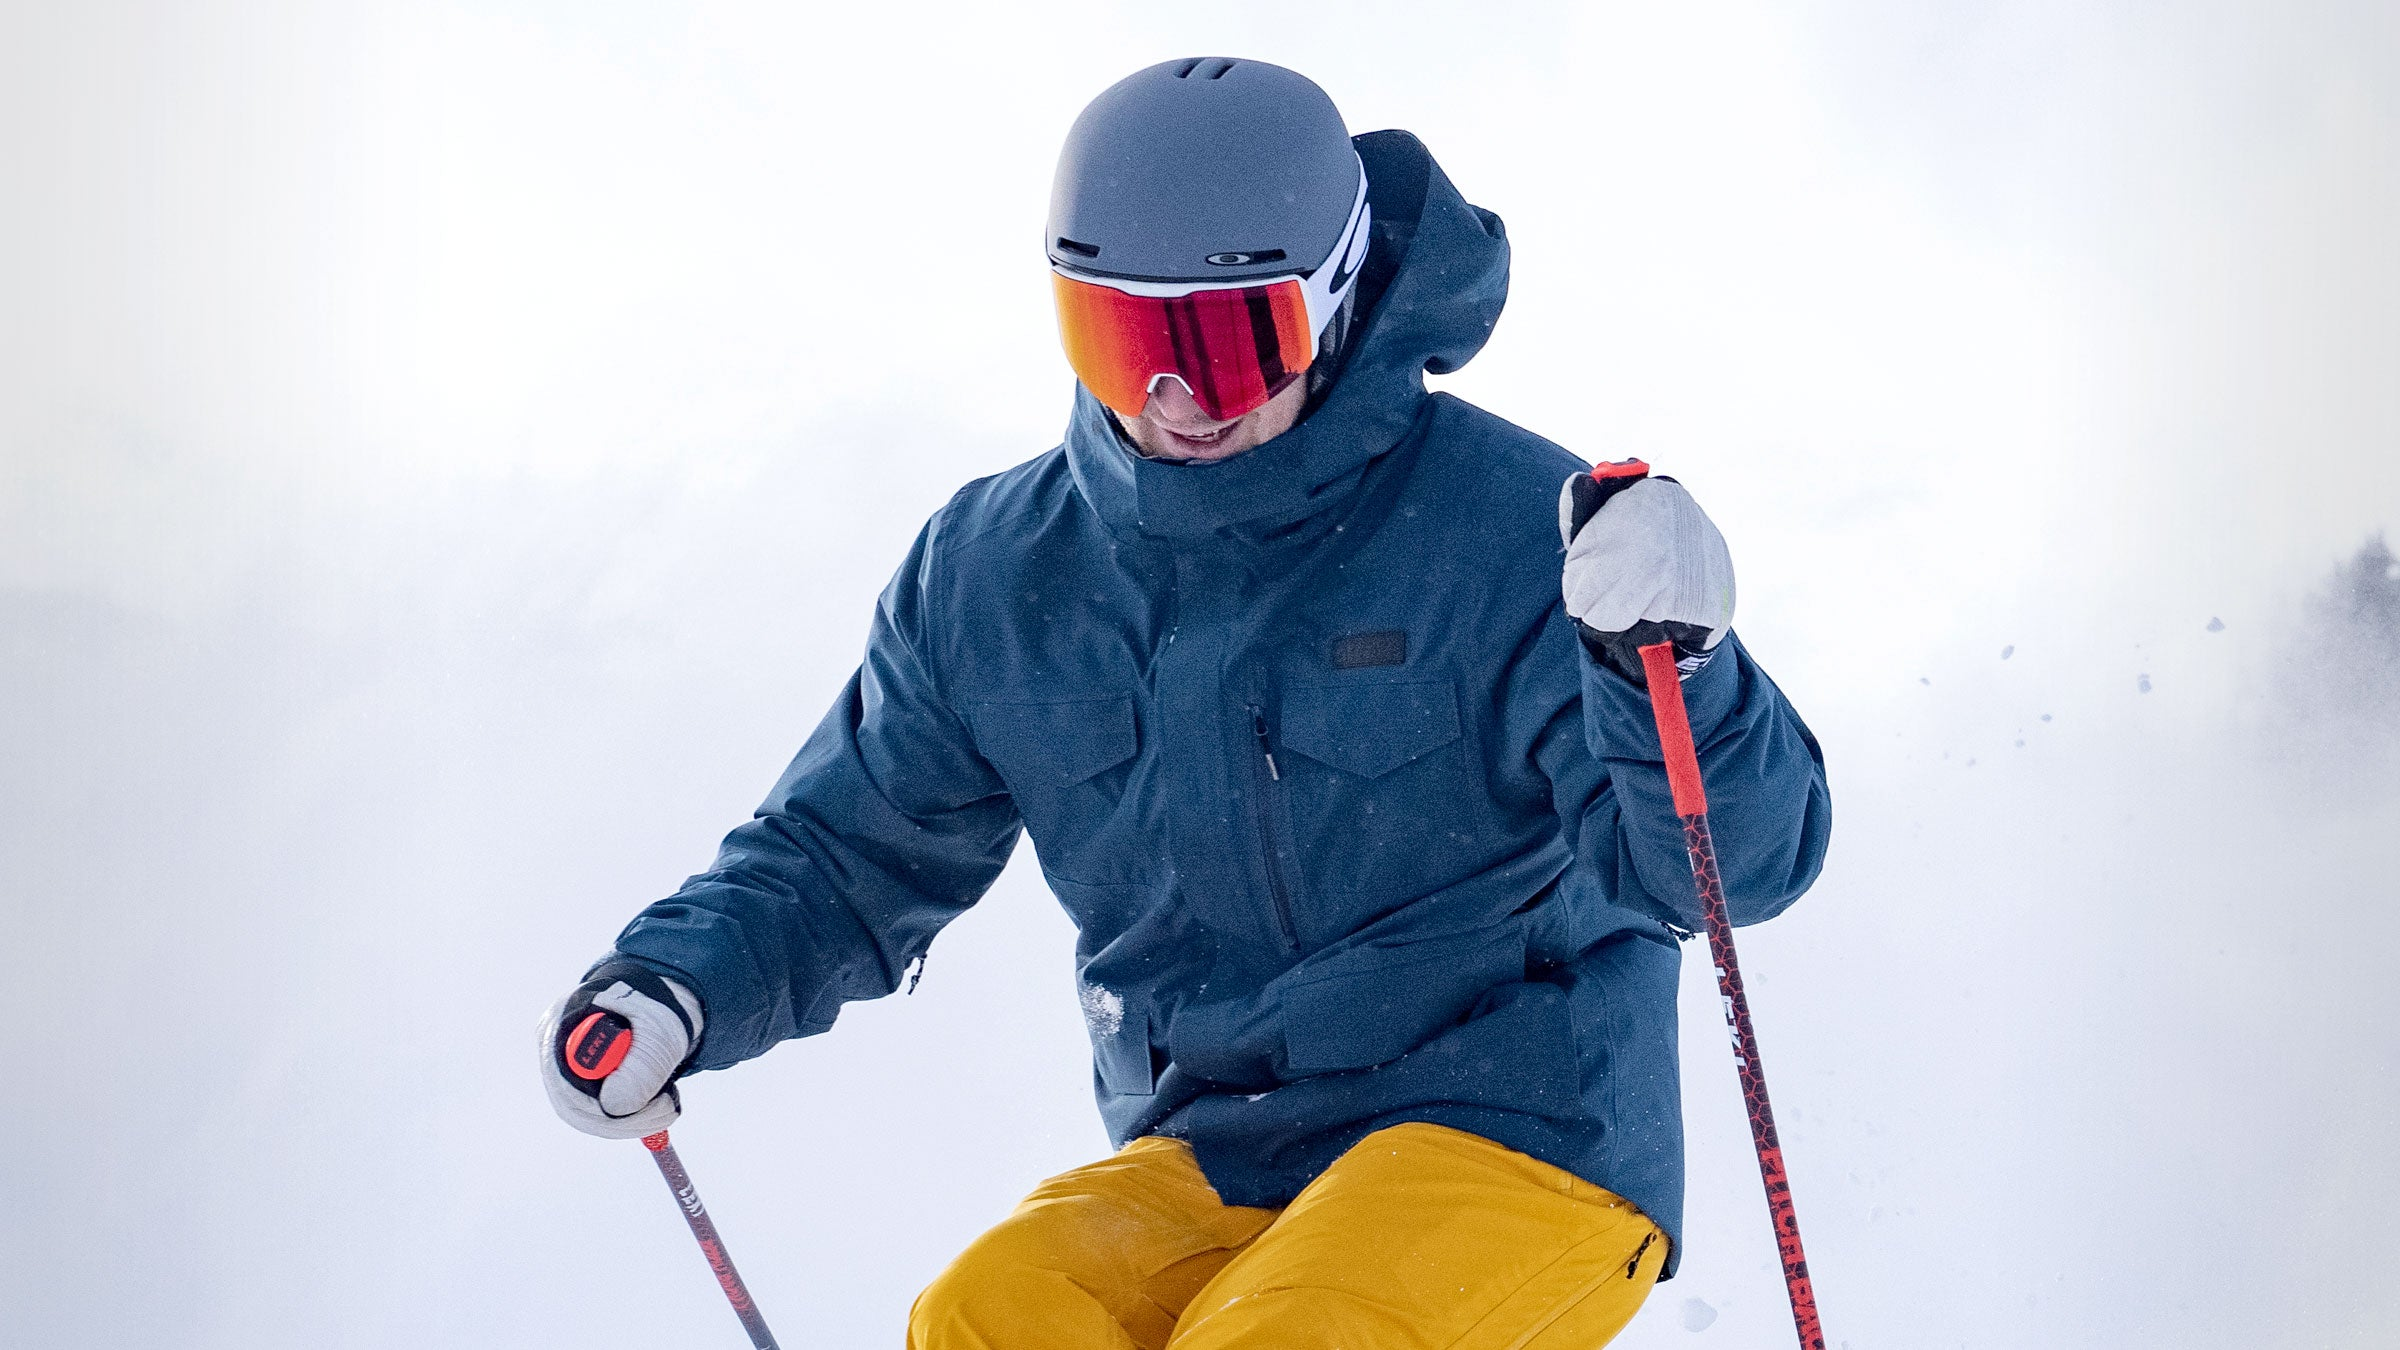 skier close-up in conundrum new navy ski jacket